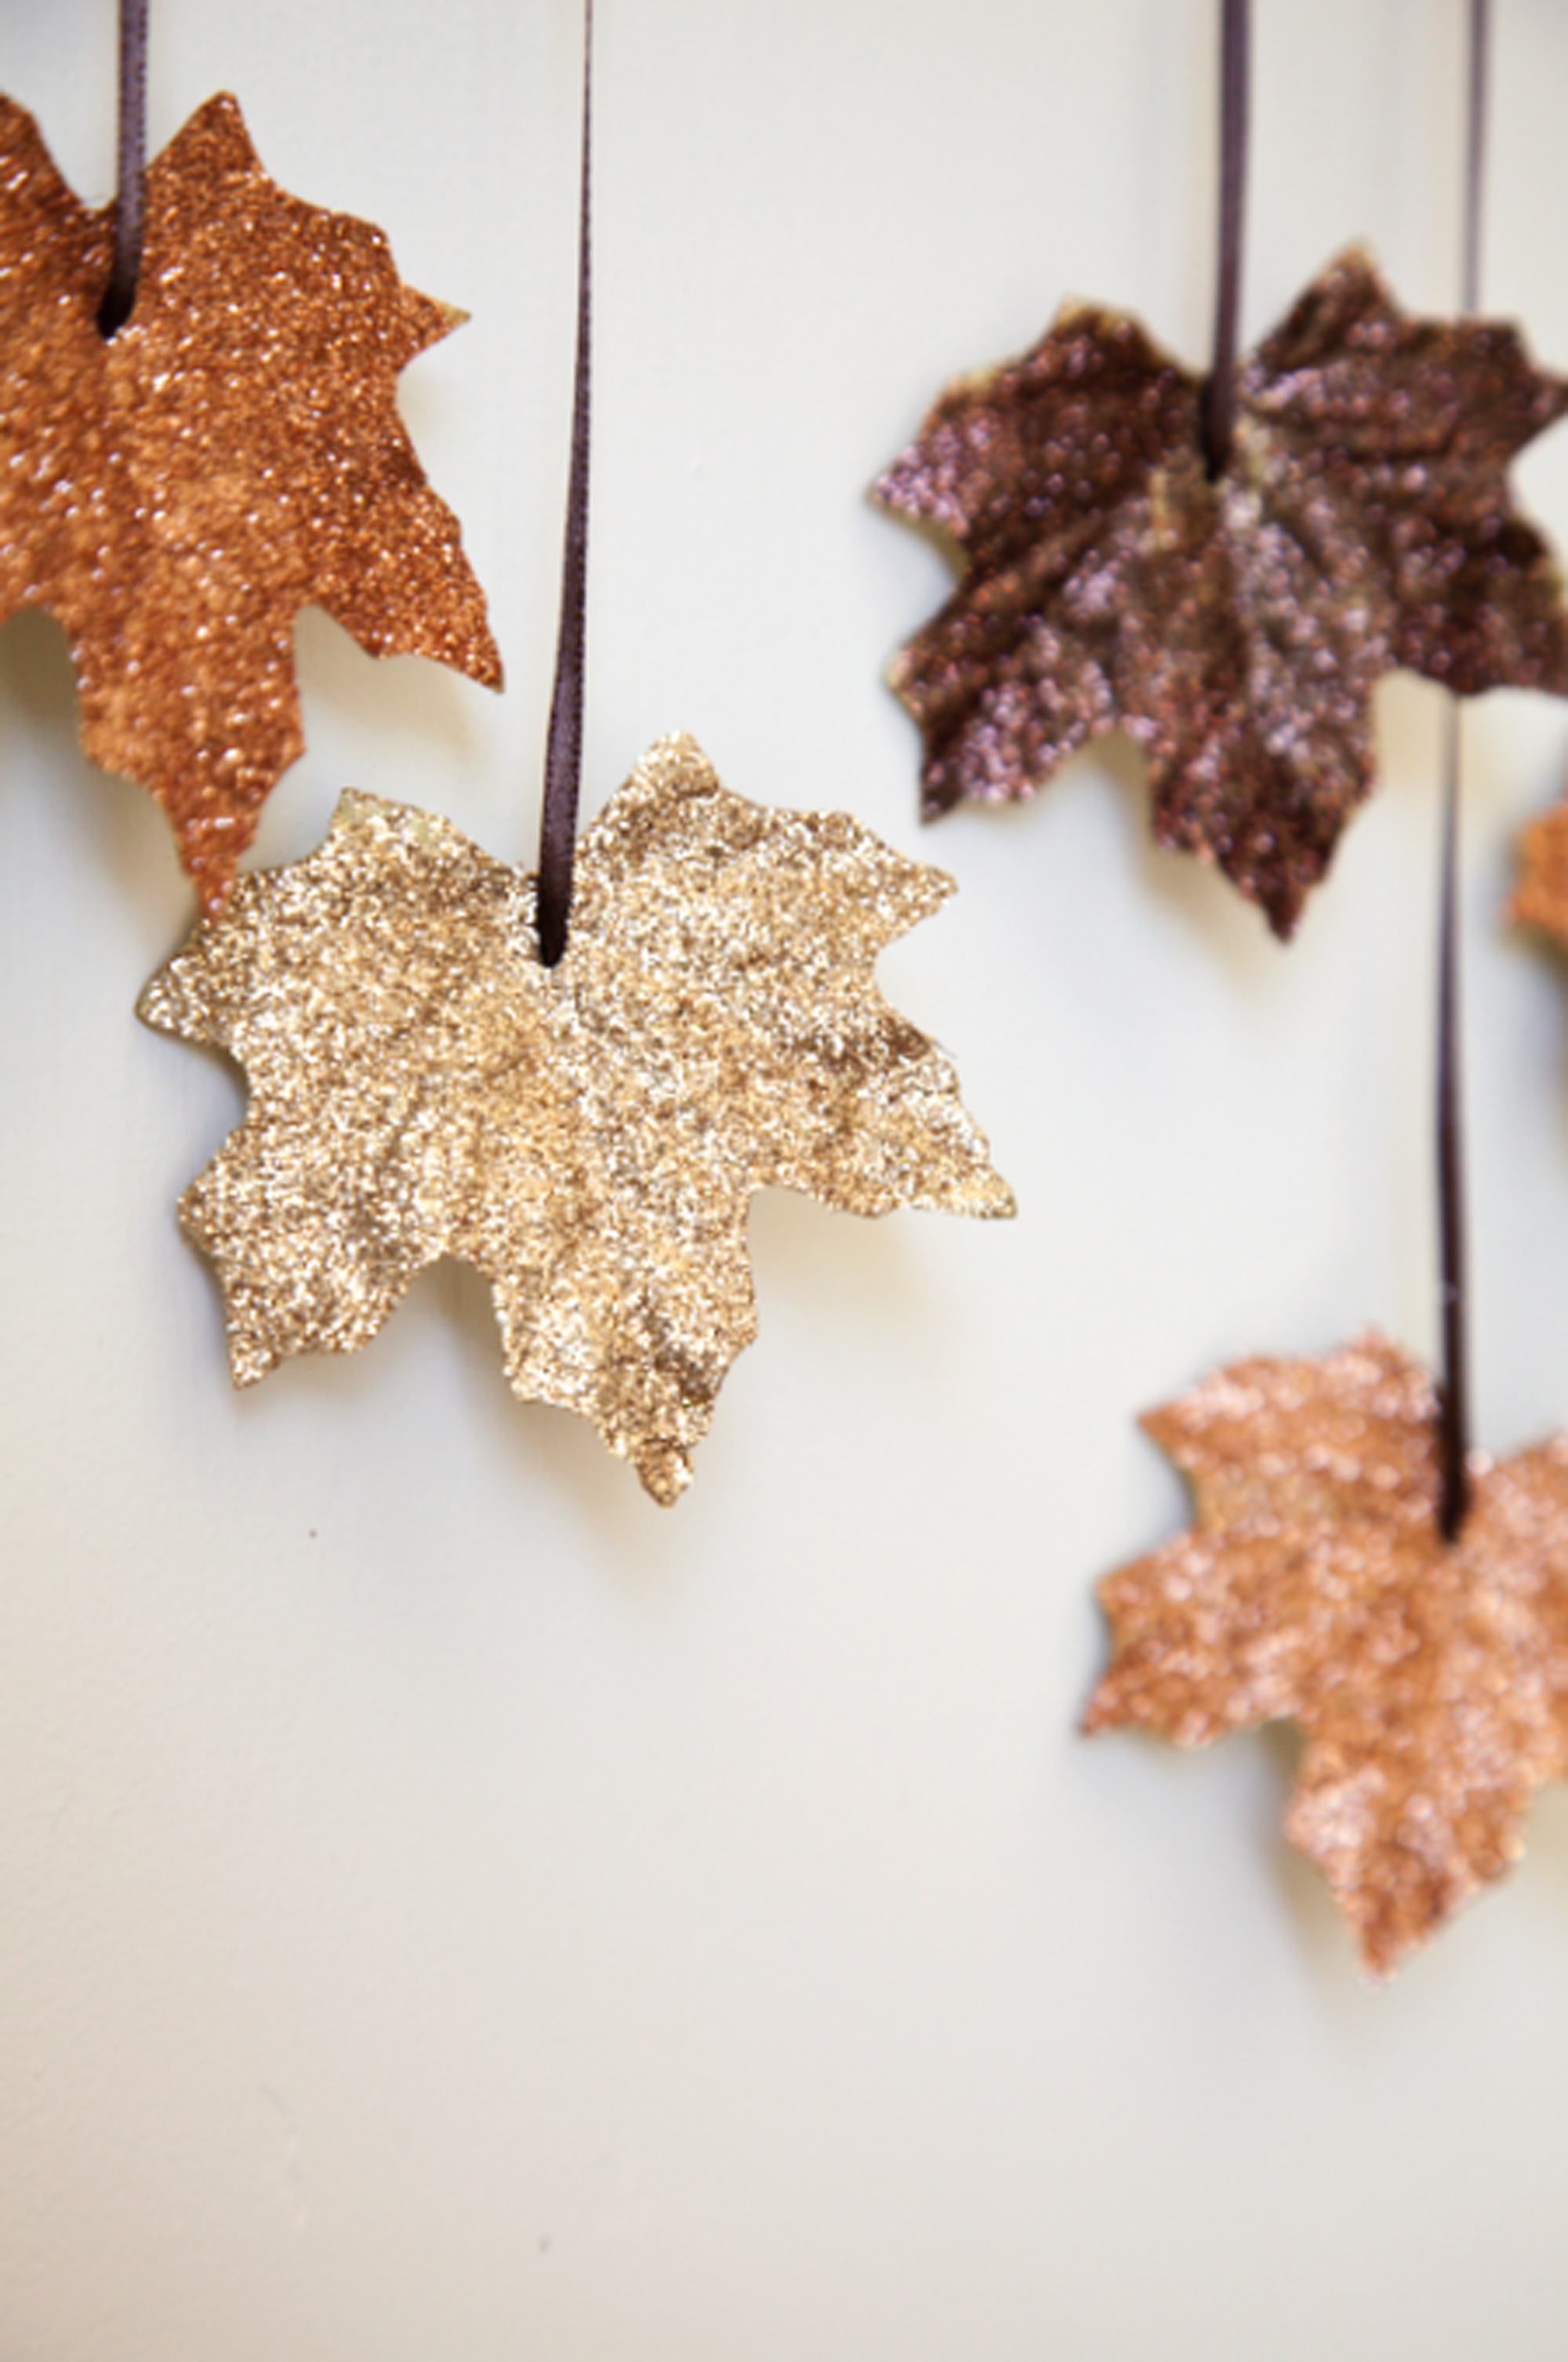 30 Best Fall Crafts - Easy DIY Home Decor Ideas for Fall